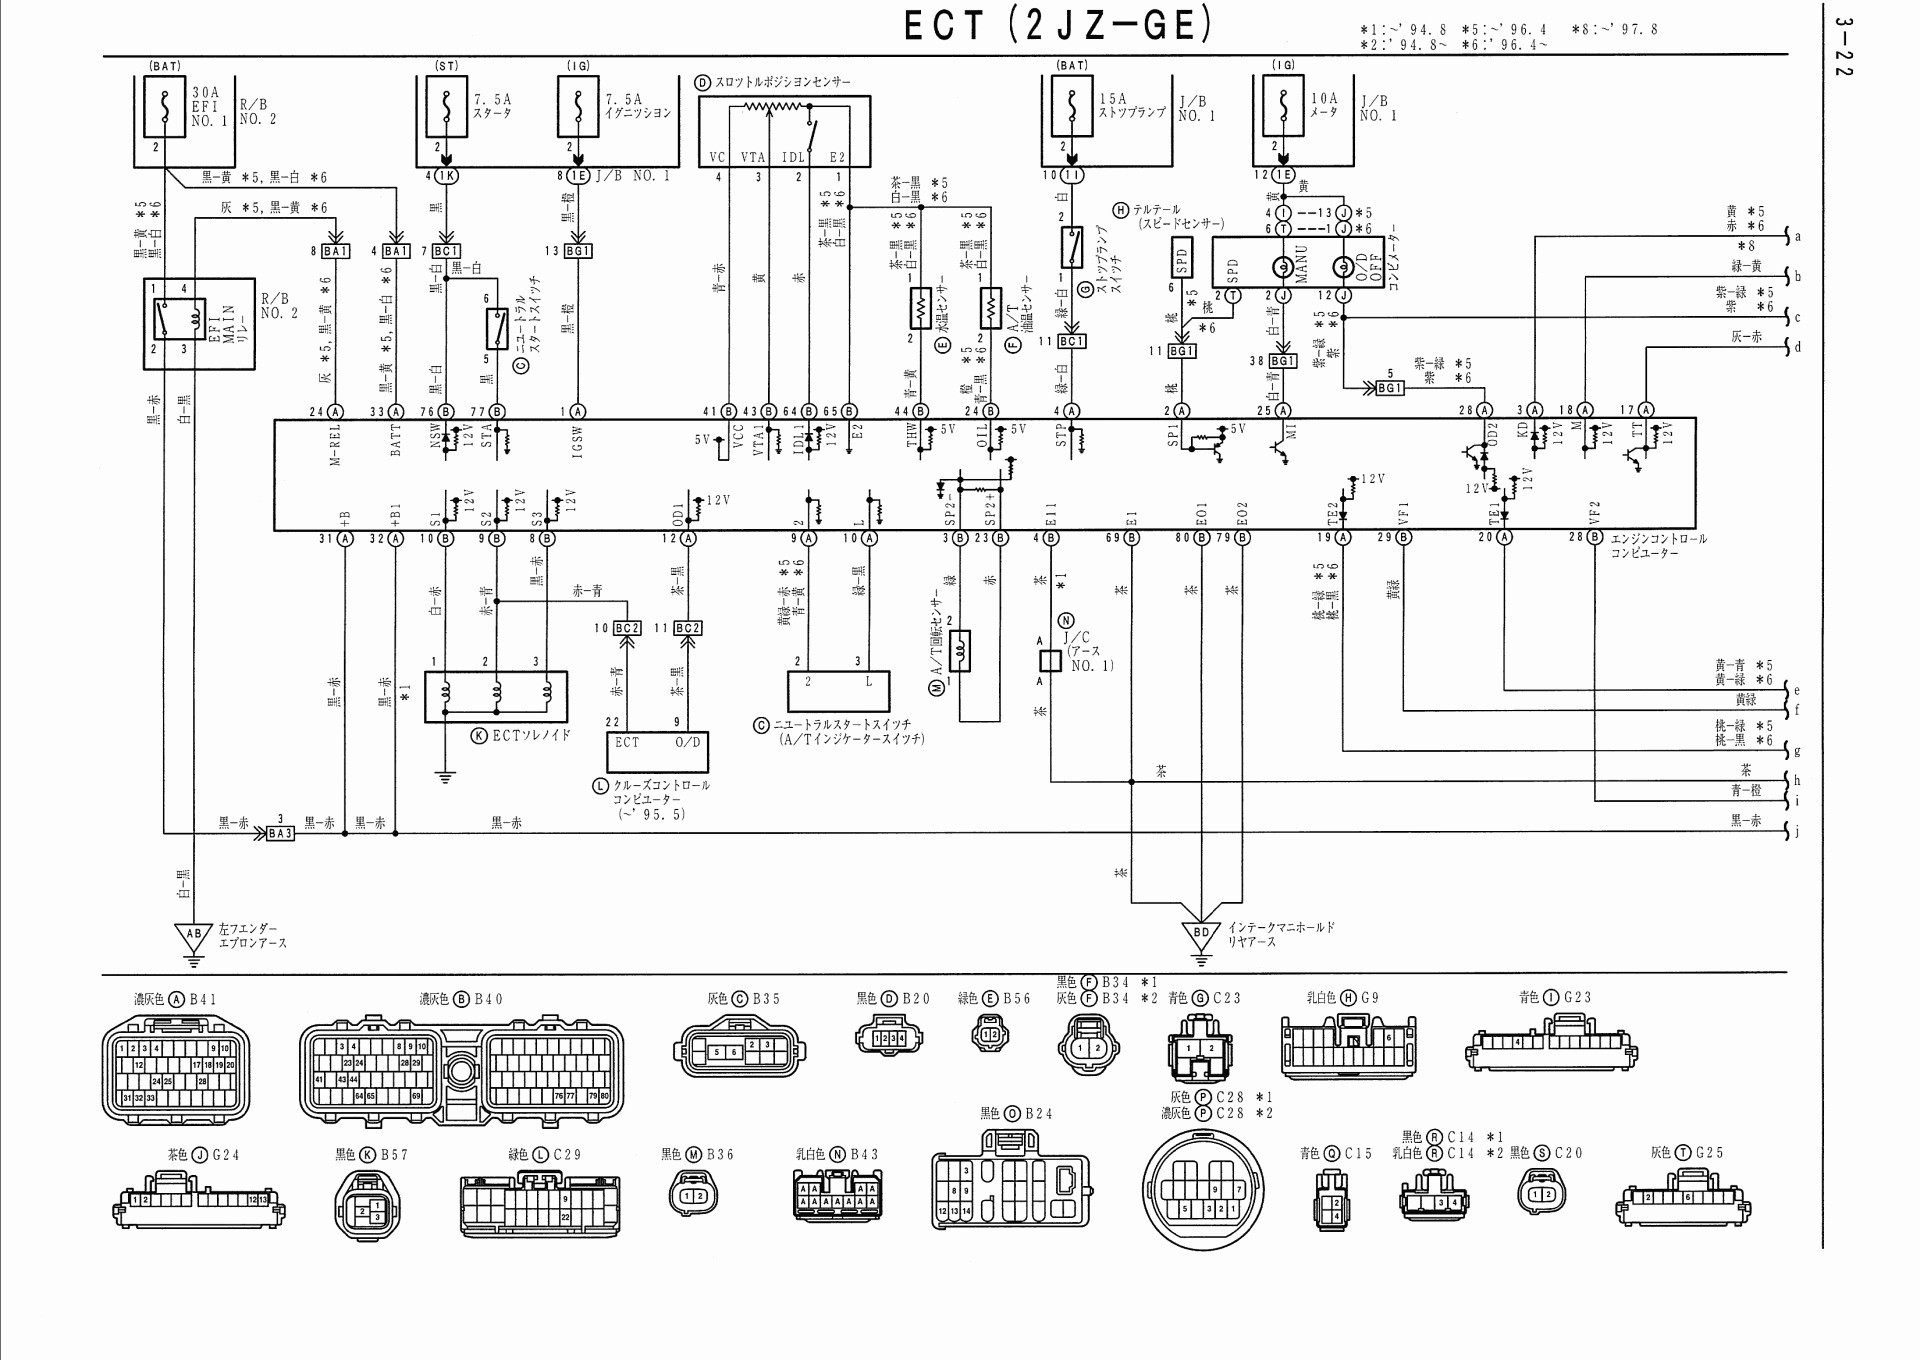 wiring diagram as well as 1992 ford f 150 wiring diagram wiring